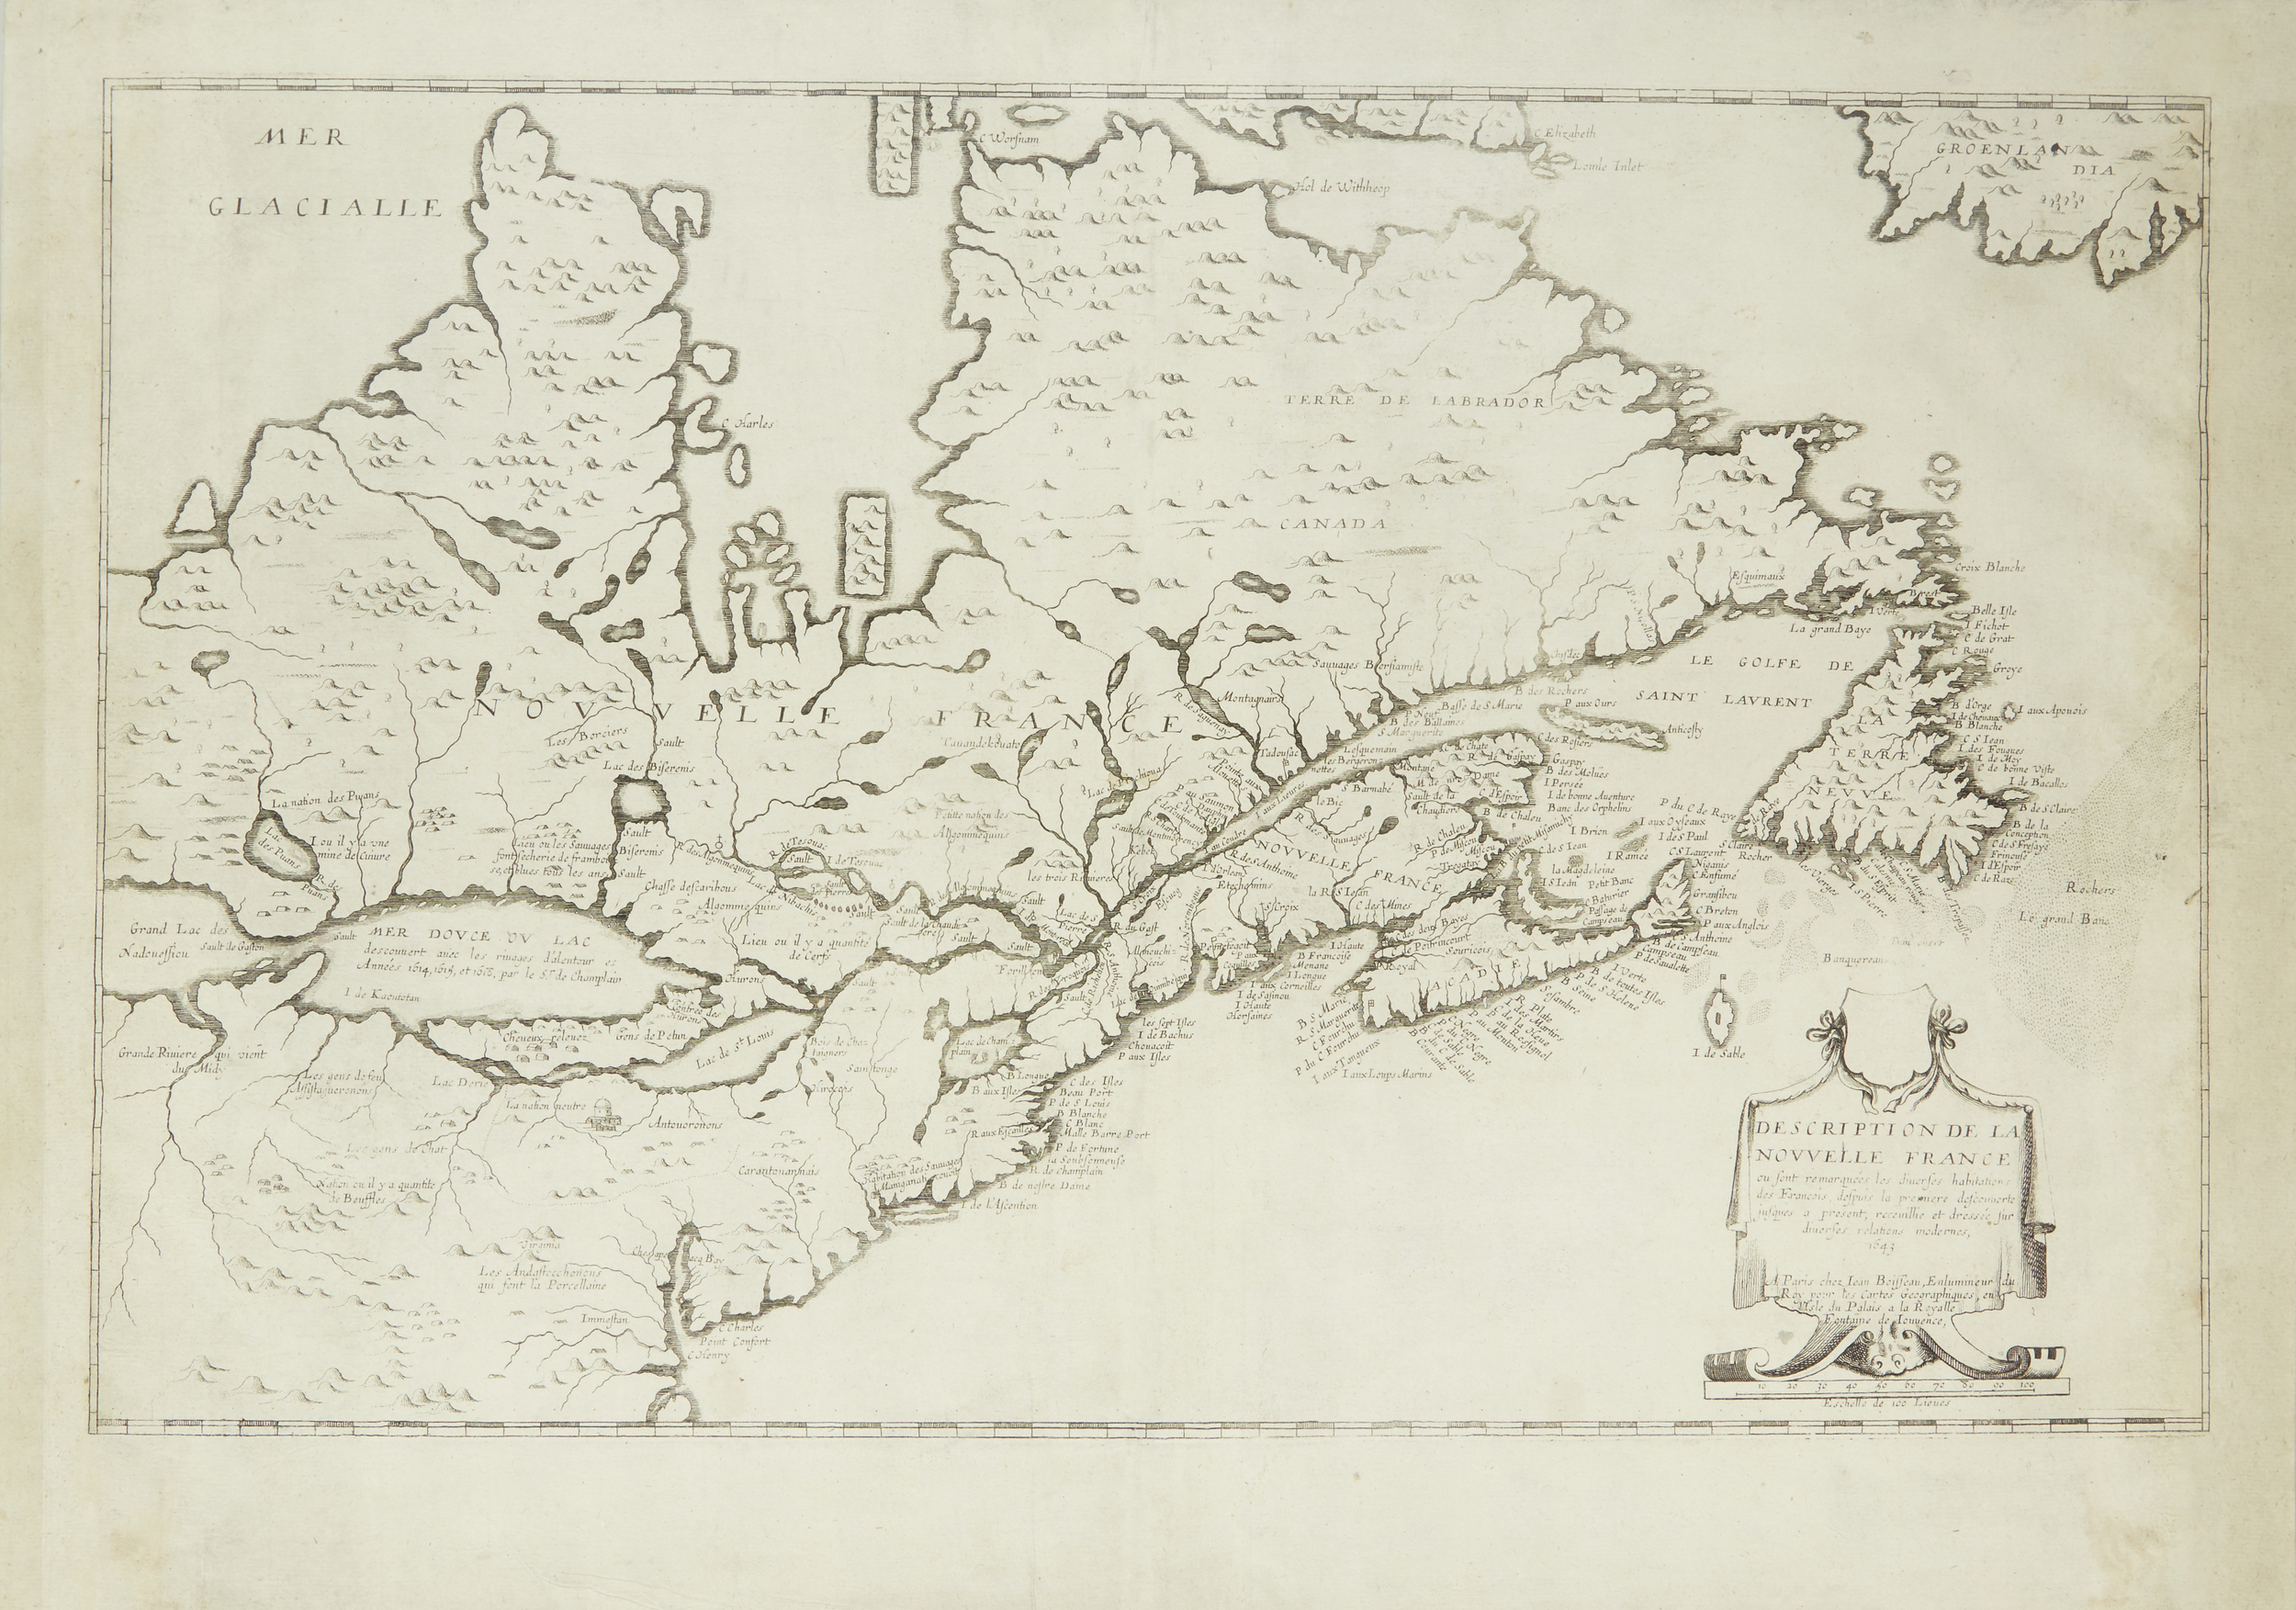 Shown before framing, this 1643 map of the Great Lakes by Jean Boisseau identifies the lakes in French: Lac St. Louis (Ontario), Lac Derie (Erie), Mer Douce ou Lac (Huron), Grand Lac (Superior), and Lac des Puans (Michigan).